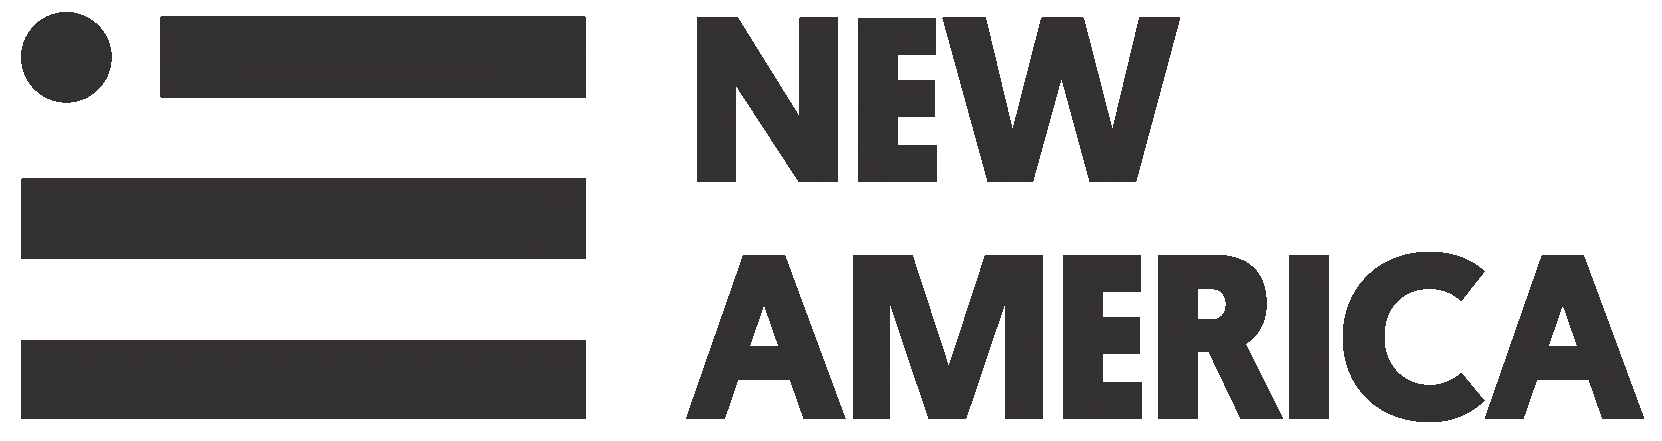 New America logo (black and white): At left is a stylized flag image similar to United States flag, with a circle in top left corner where US flag stars normally appear and alternating black and white stripes (three black, 2 white); At right says NEW AMERICA with NEW stacked on top of AMERICA